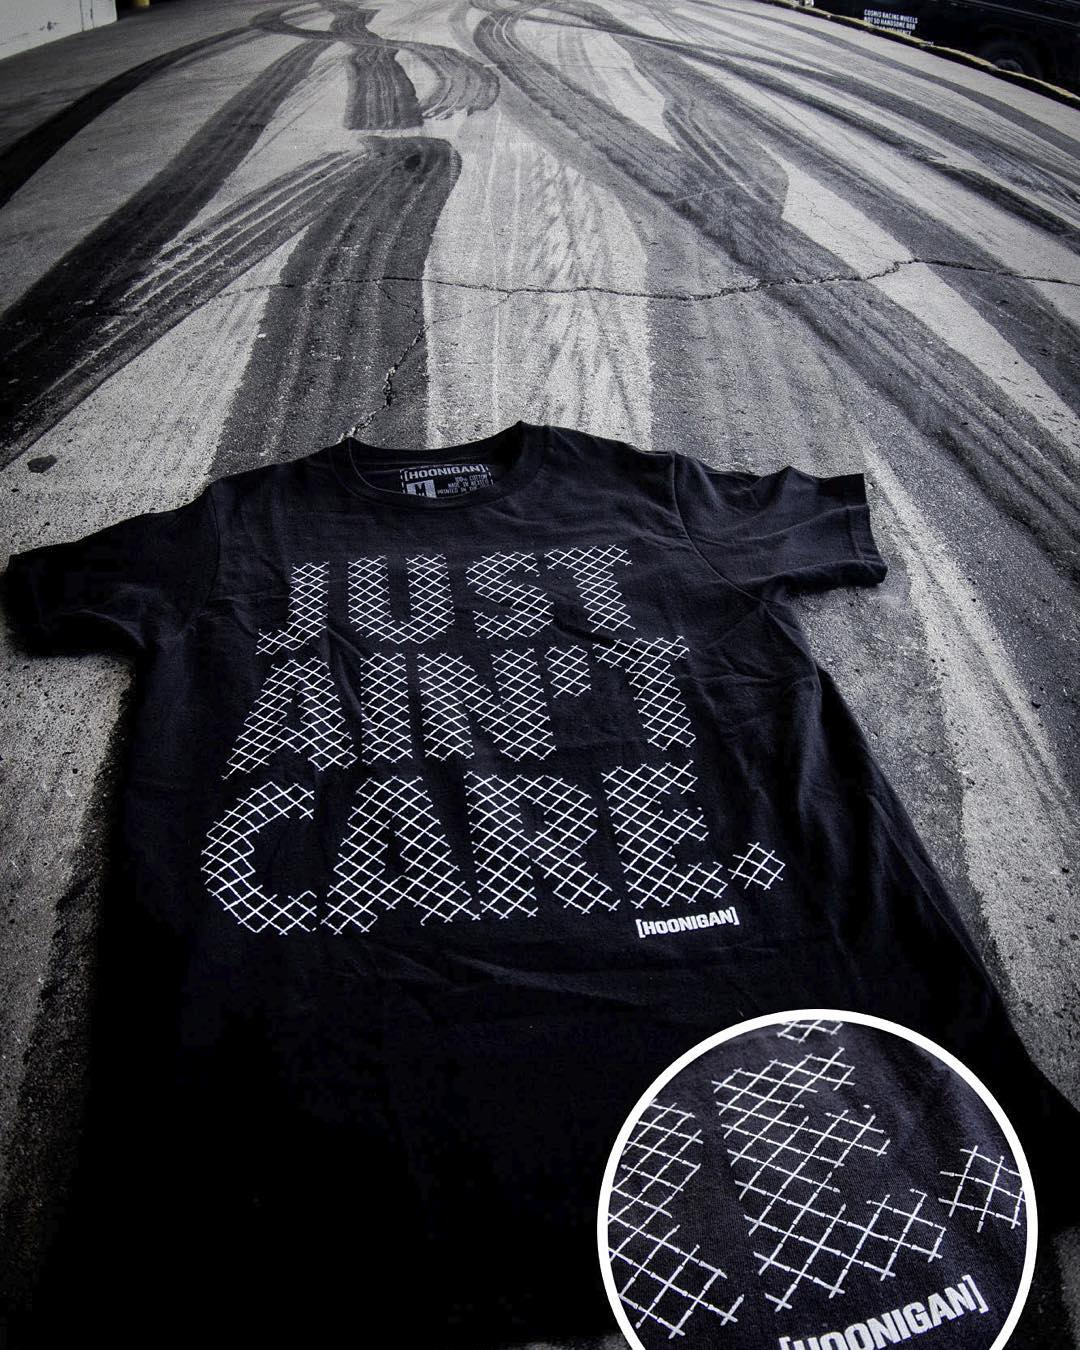 We had to kill a lot of tires for this shot because unlike this Irons #JustAintCare tee, (available on #hooniganDOTcom) we do care. Sometimes. #wejustlikedoingburnoutsatwork